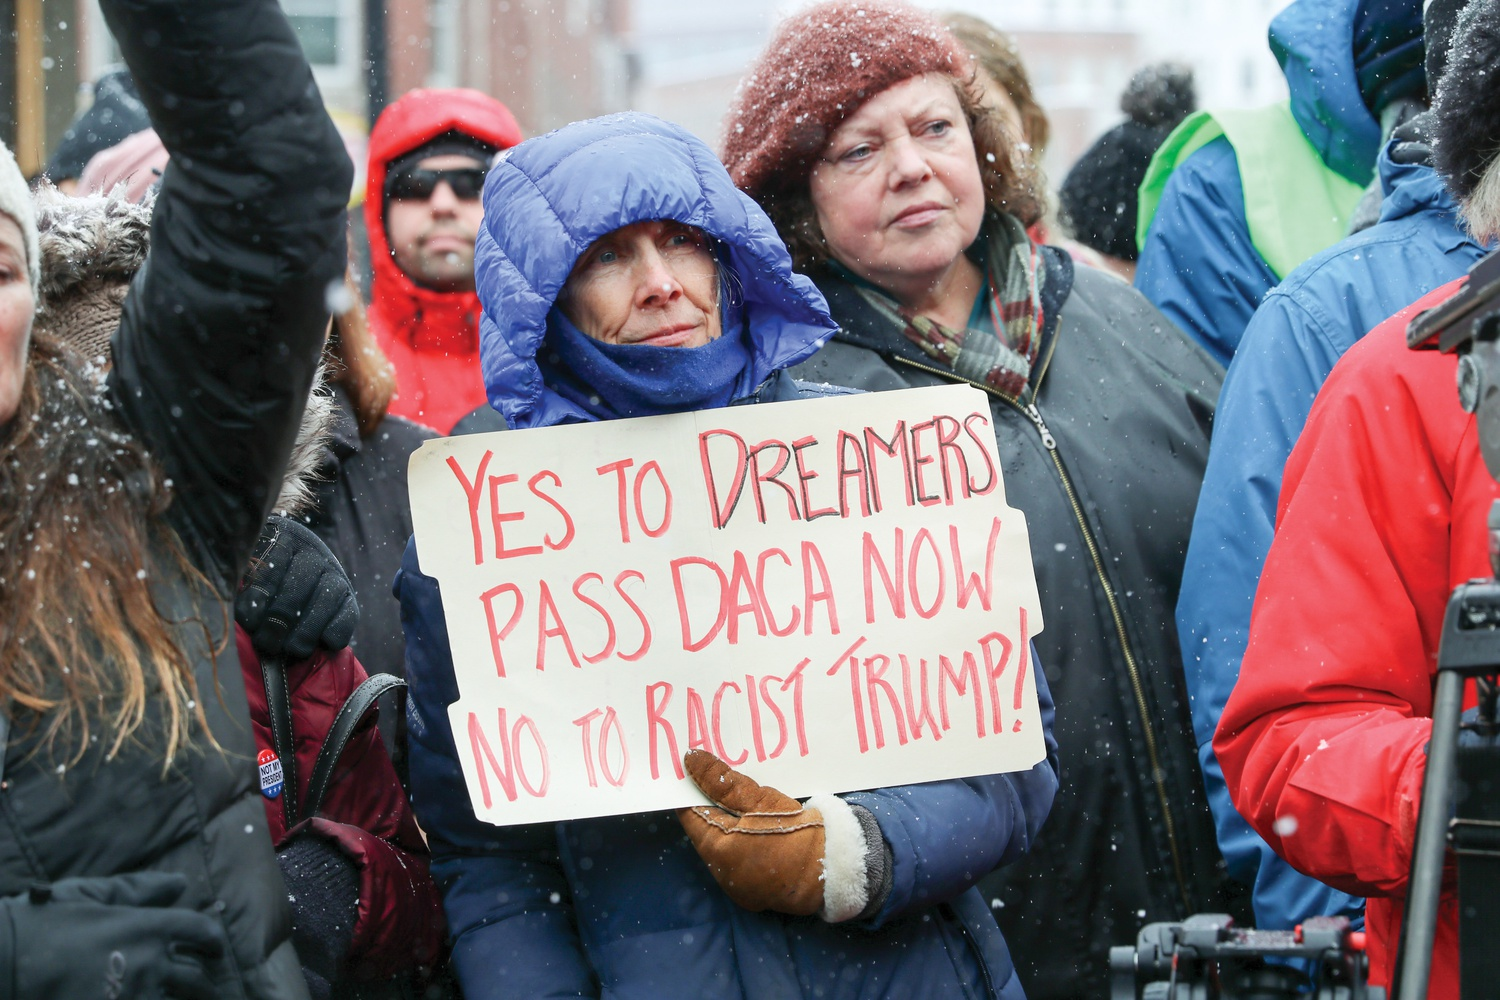 A woman holds a sign supporting Deferred Action for Childhood Arrivals recipients at a Monday protest, criticizing President Donald Trump's declaration of a national emergency to build a border wall.